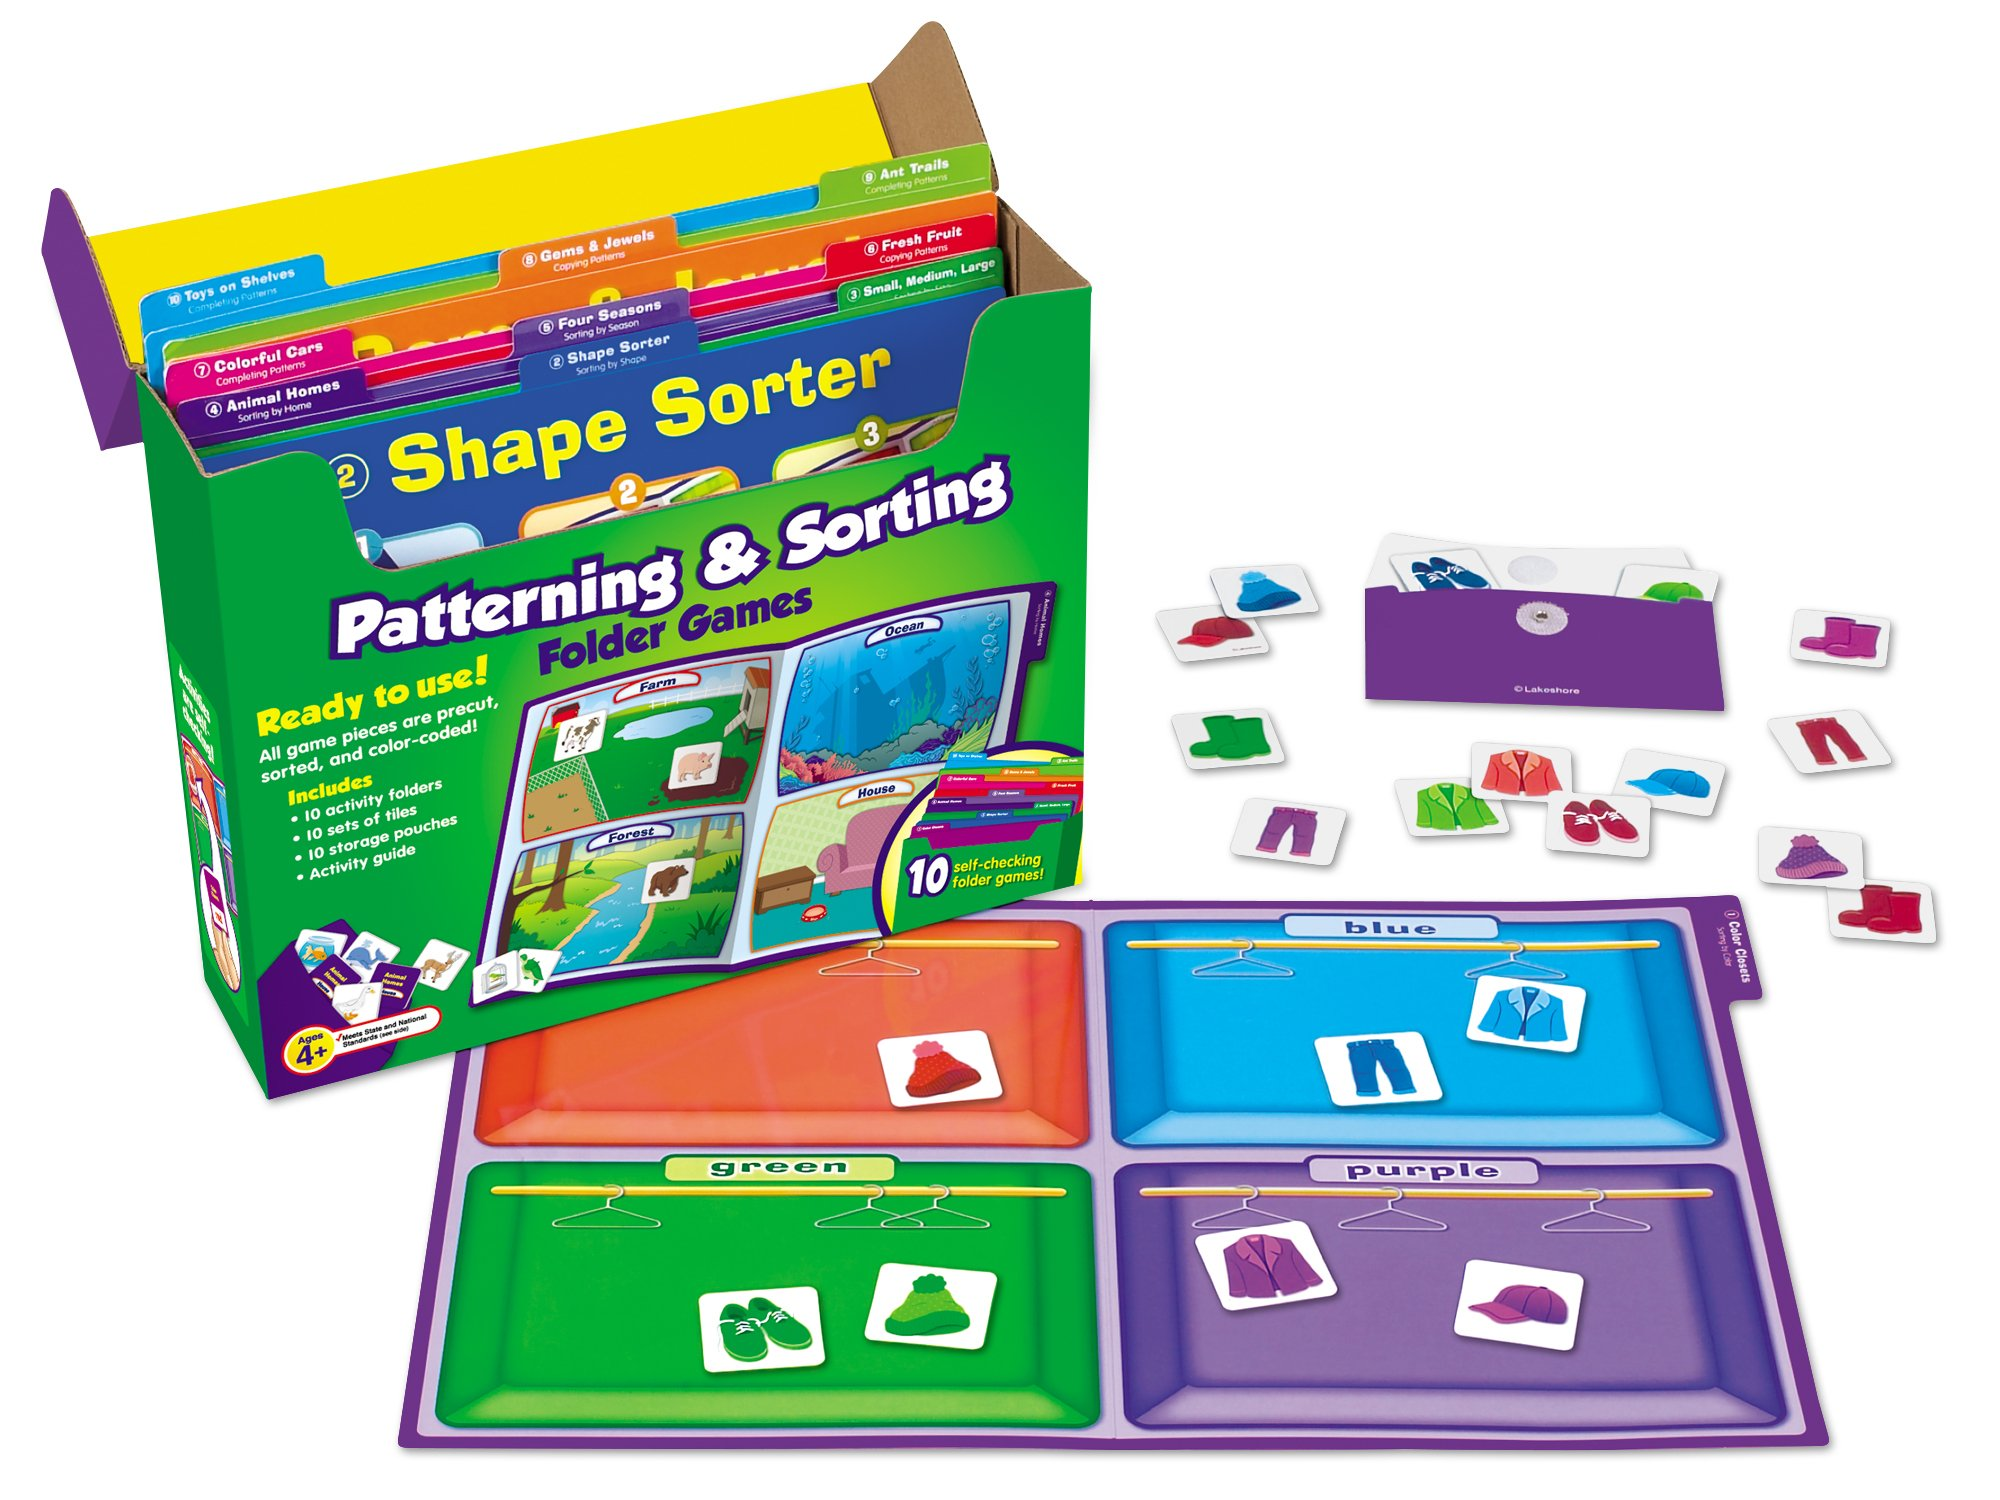 Lakeshore Early Math File Folder Game Libraries - Pre K-K - Complete Set by Lakeshore Learning Materials (Image #2)